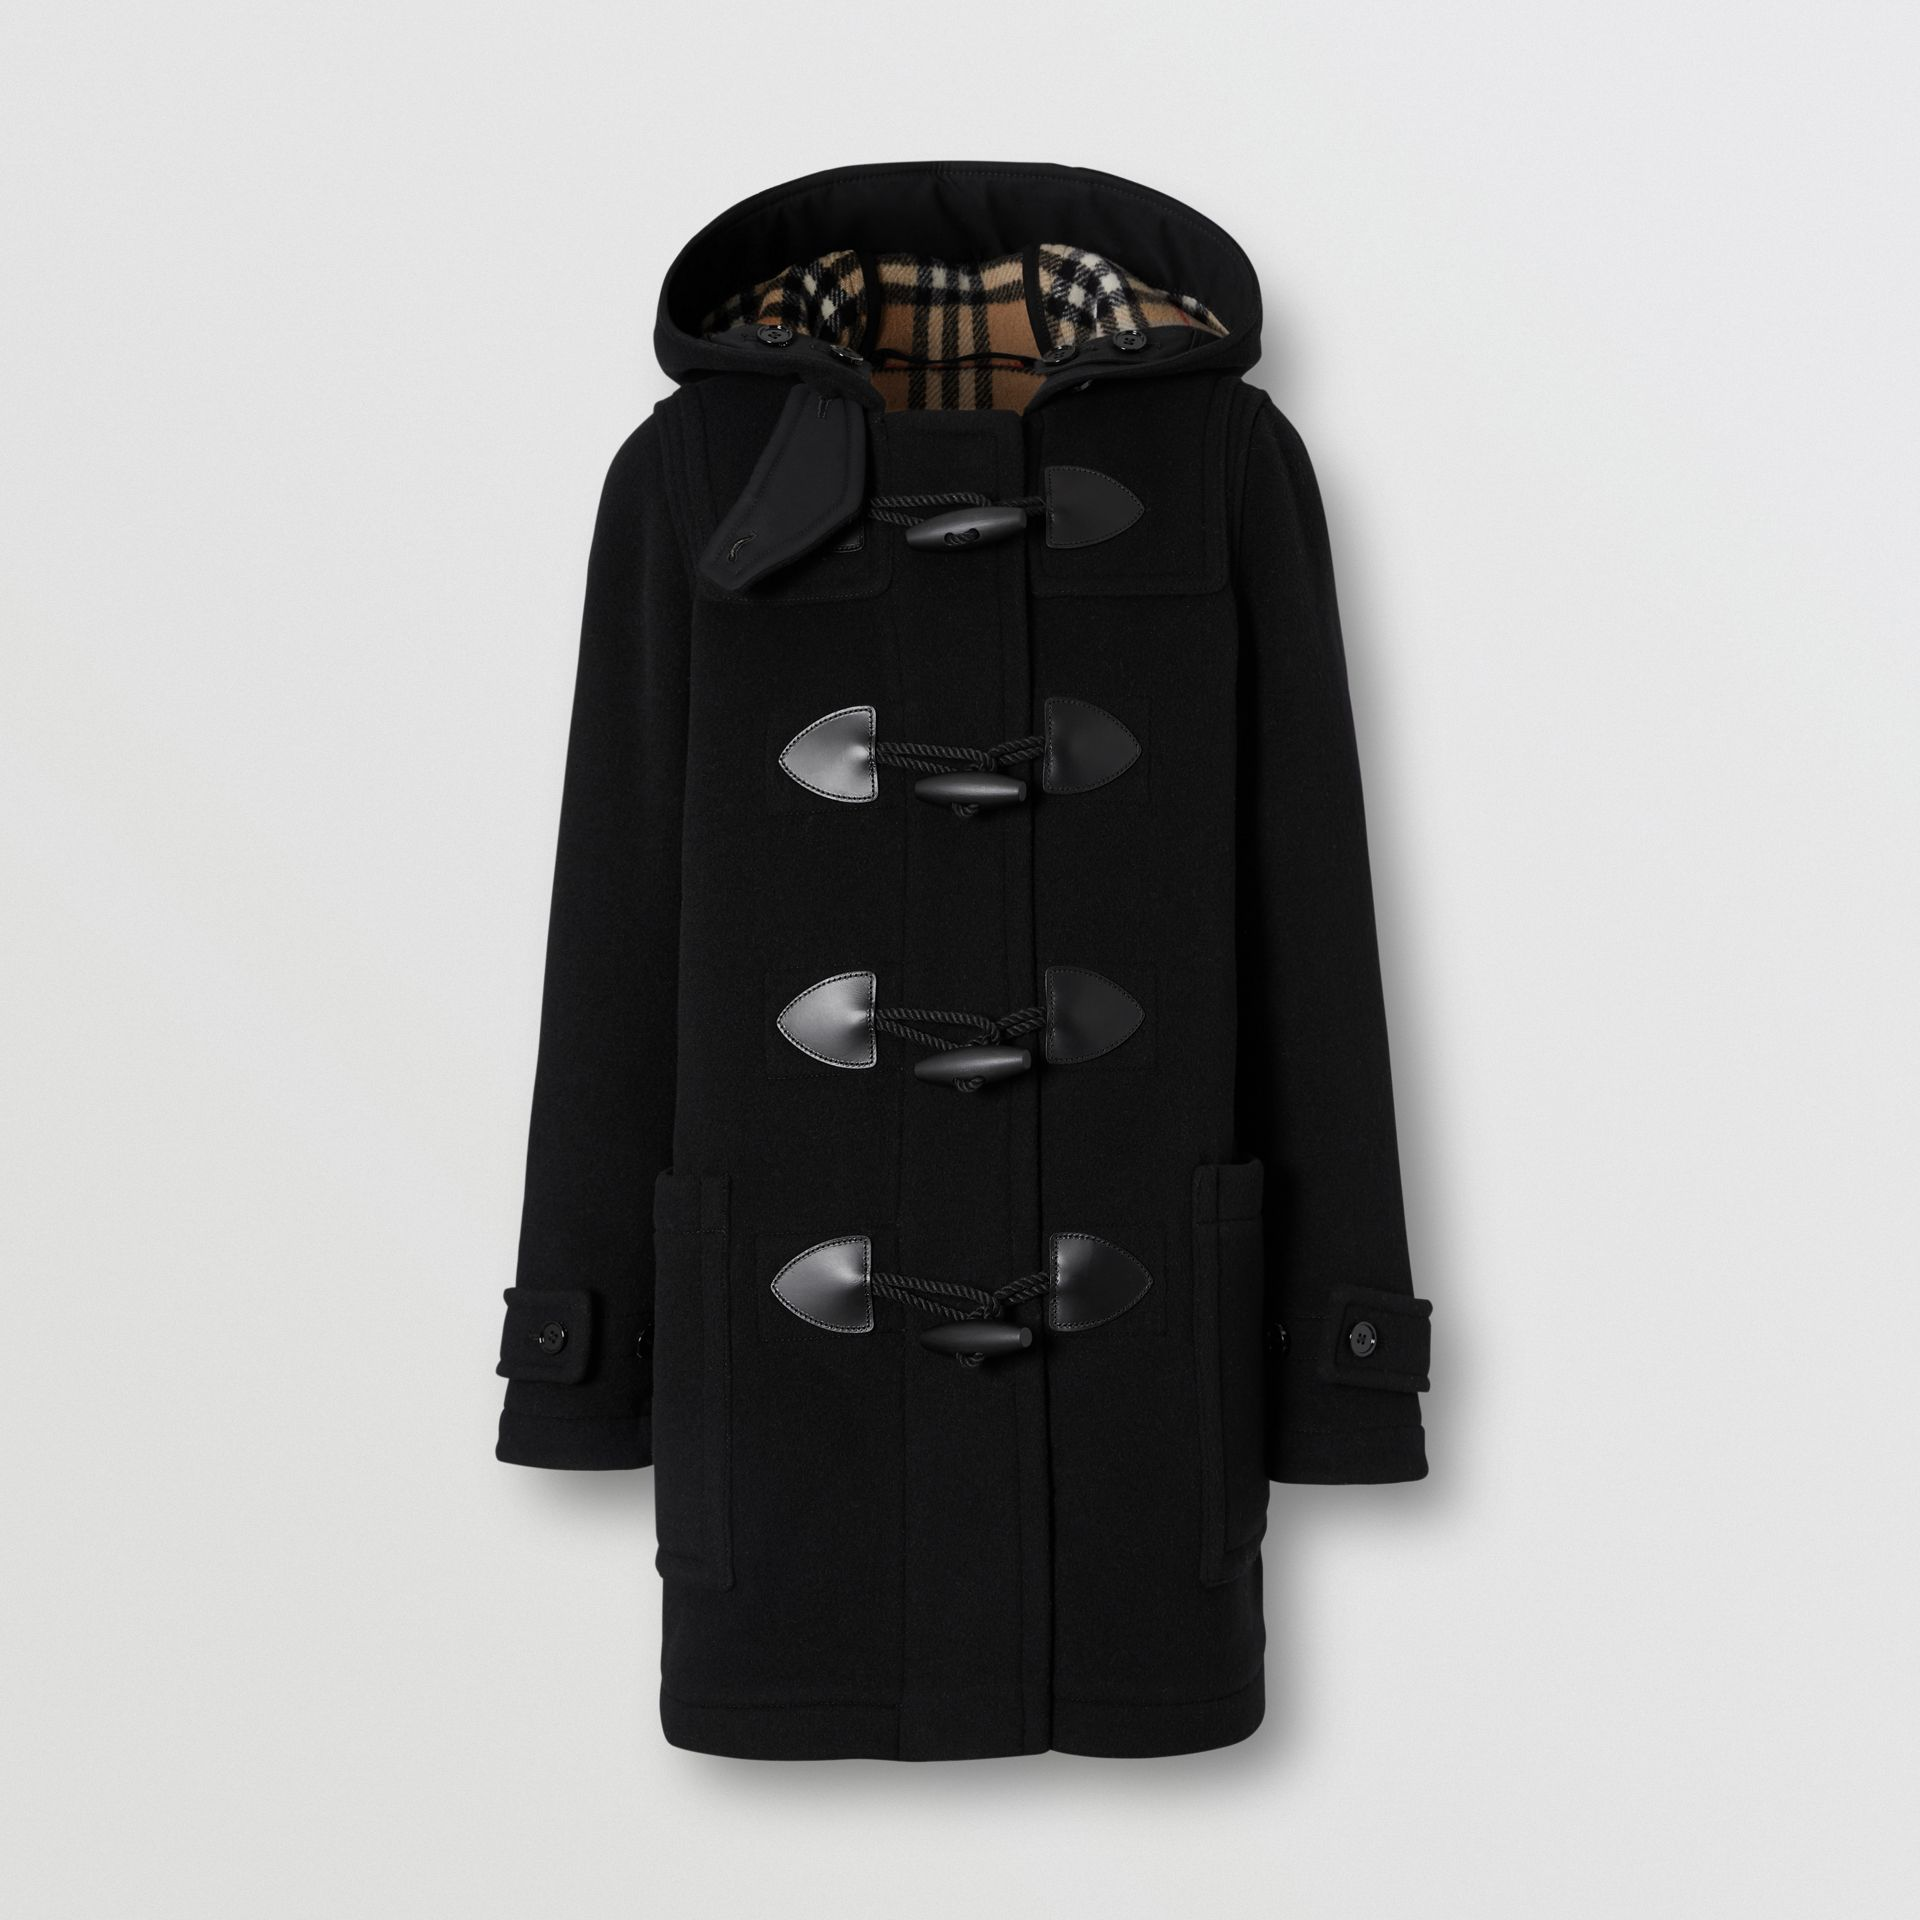 Wool Cashmere Blend Duffle Coat in Black - Women | Burberry - gallery image 3